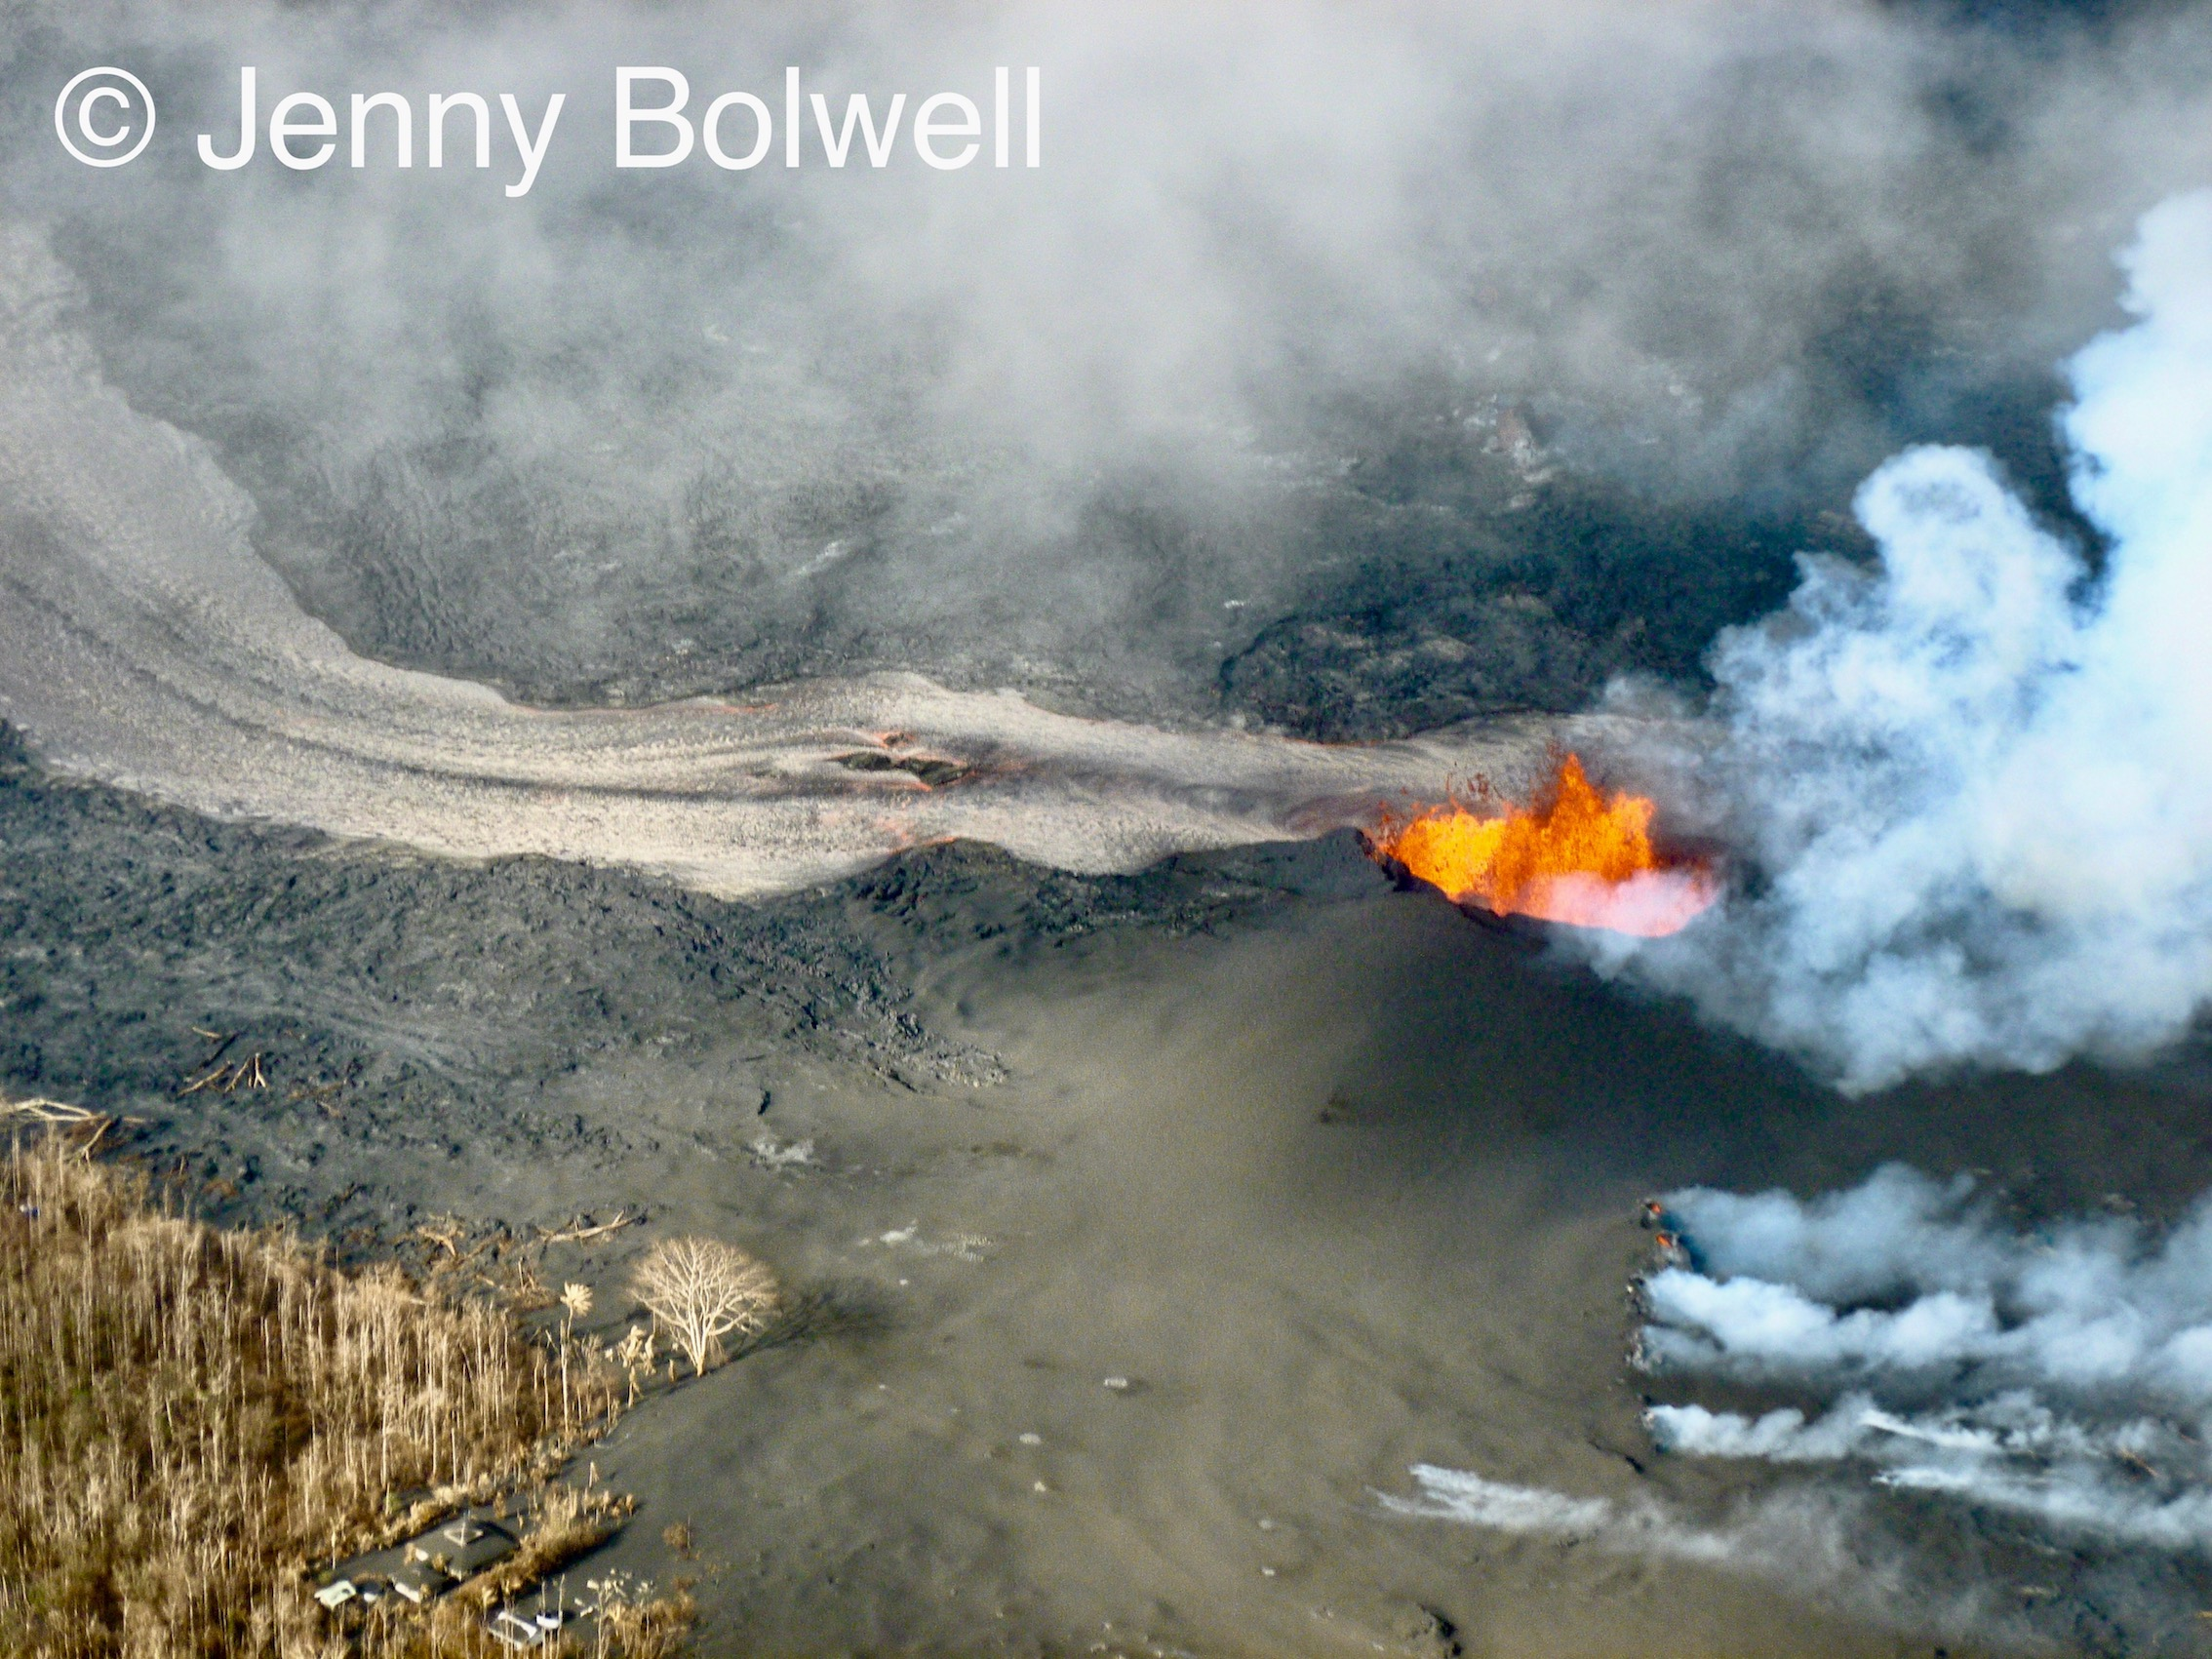 Jen's wider picture of Fissure 8 puts the lava flow into context with its surroundings.